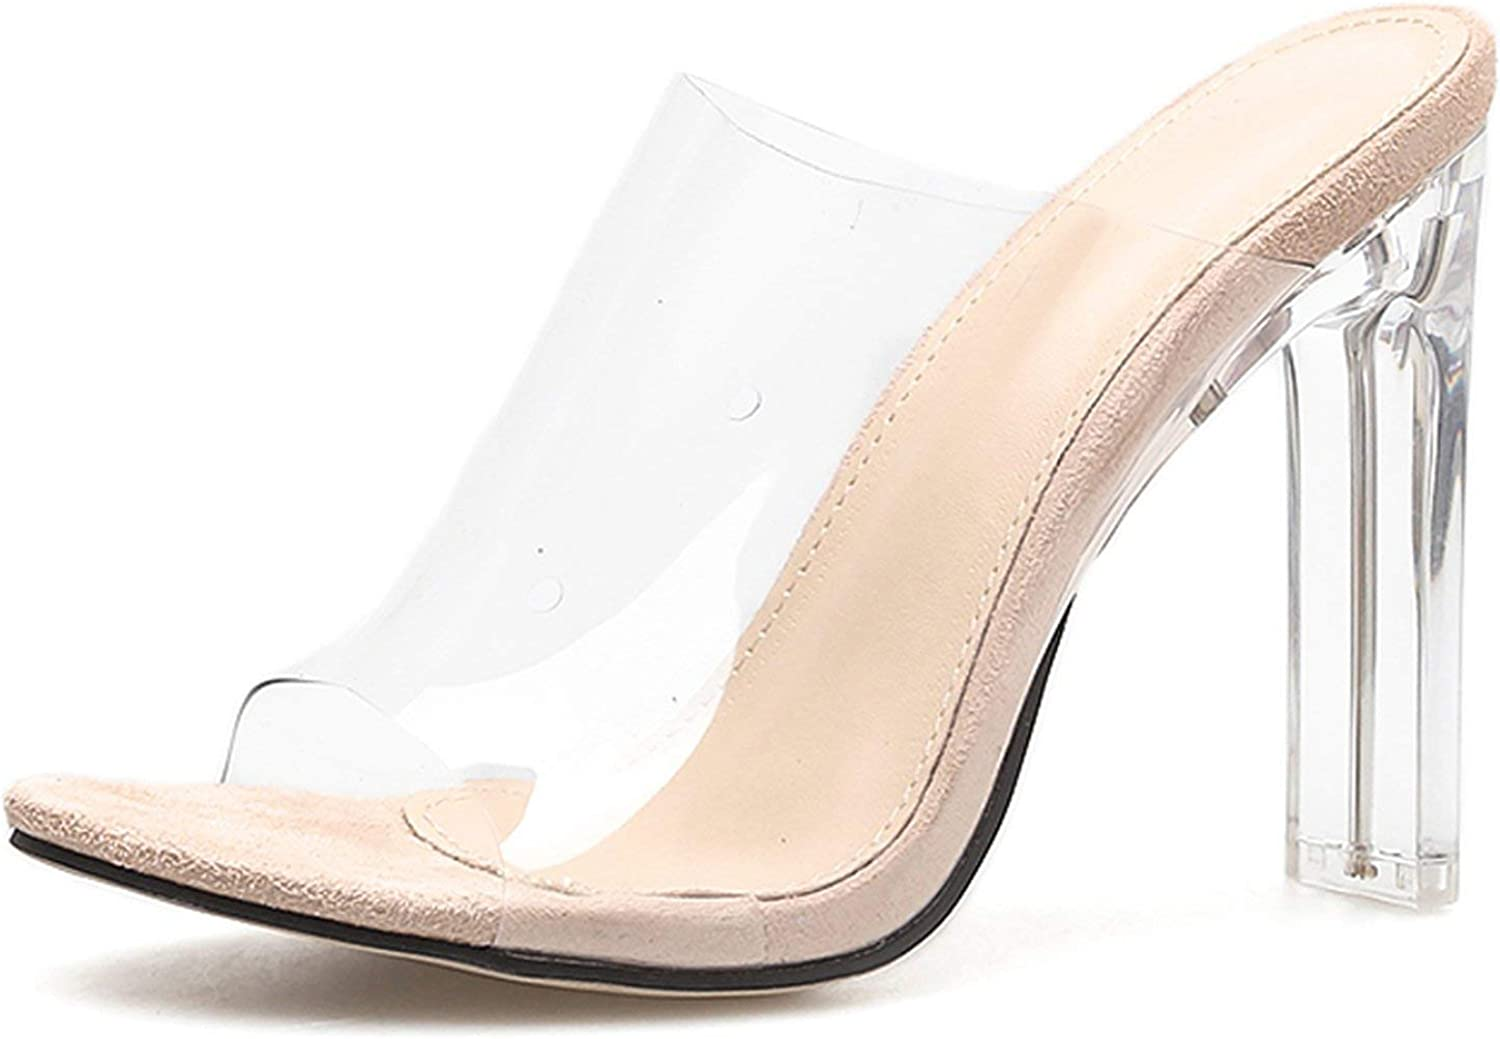 HANBINGPO 2019 New PVC Jelly Sandals Crystal Open Toed Sexy Thin Heels Crystal Women Transparent Heel Sandals Slippers Pumps,Apricot,5